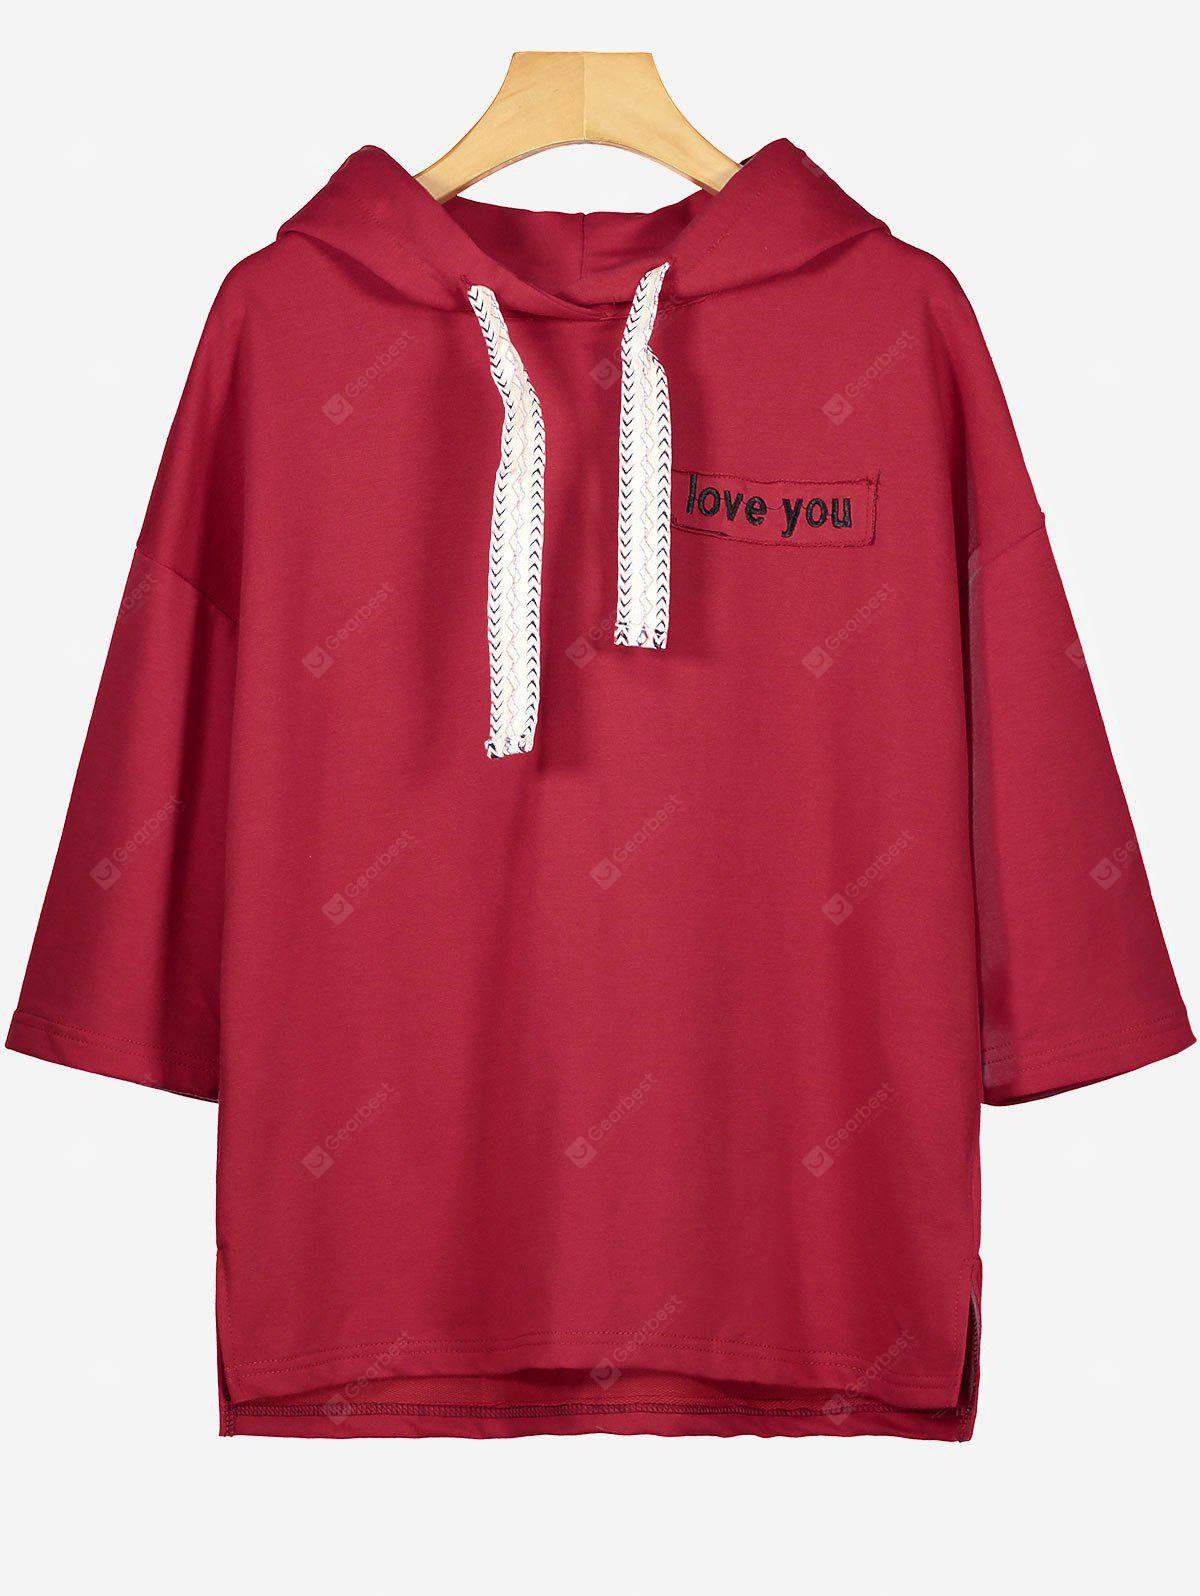 Letra Drawstring Patched Hoodie